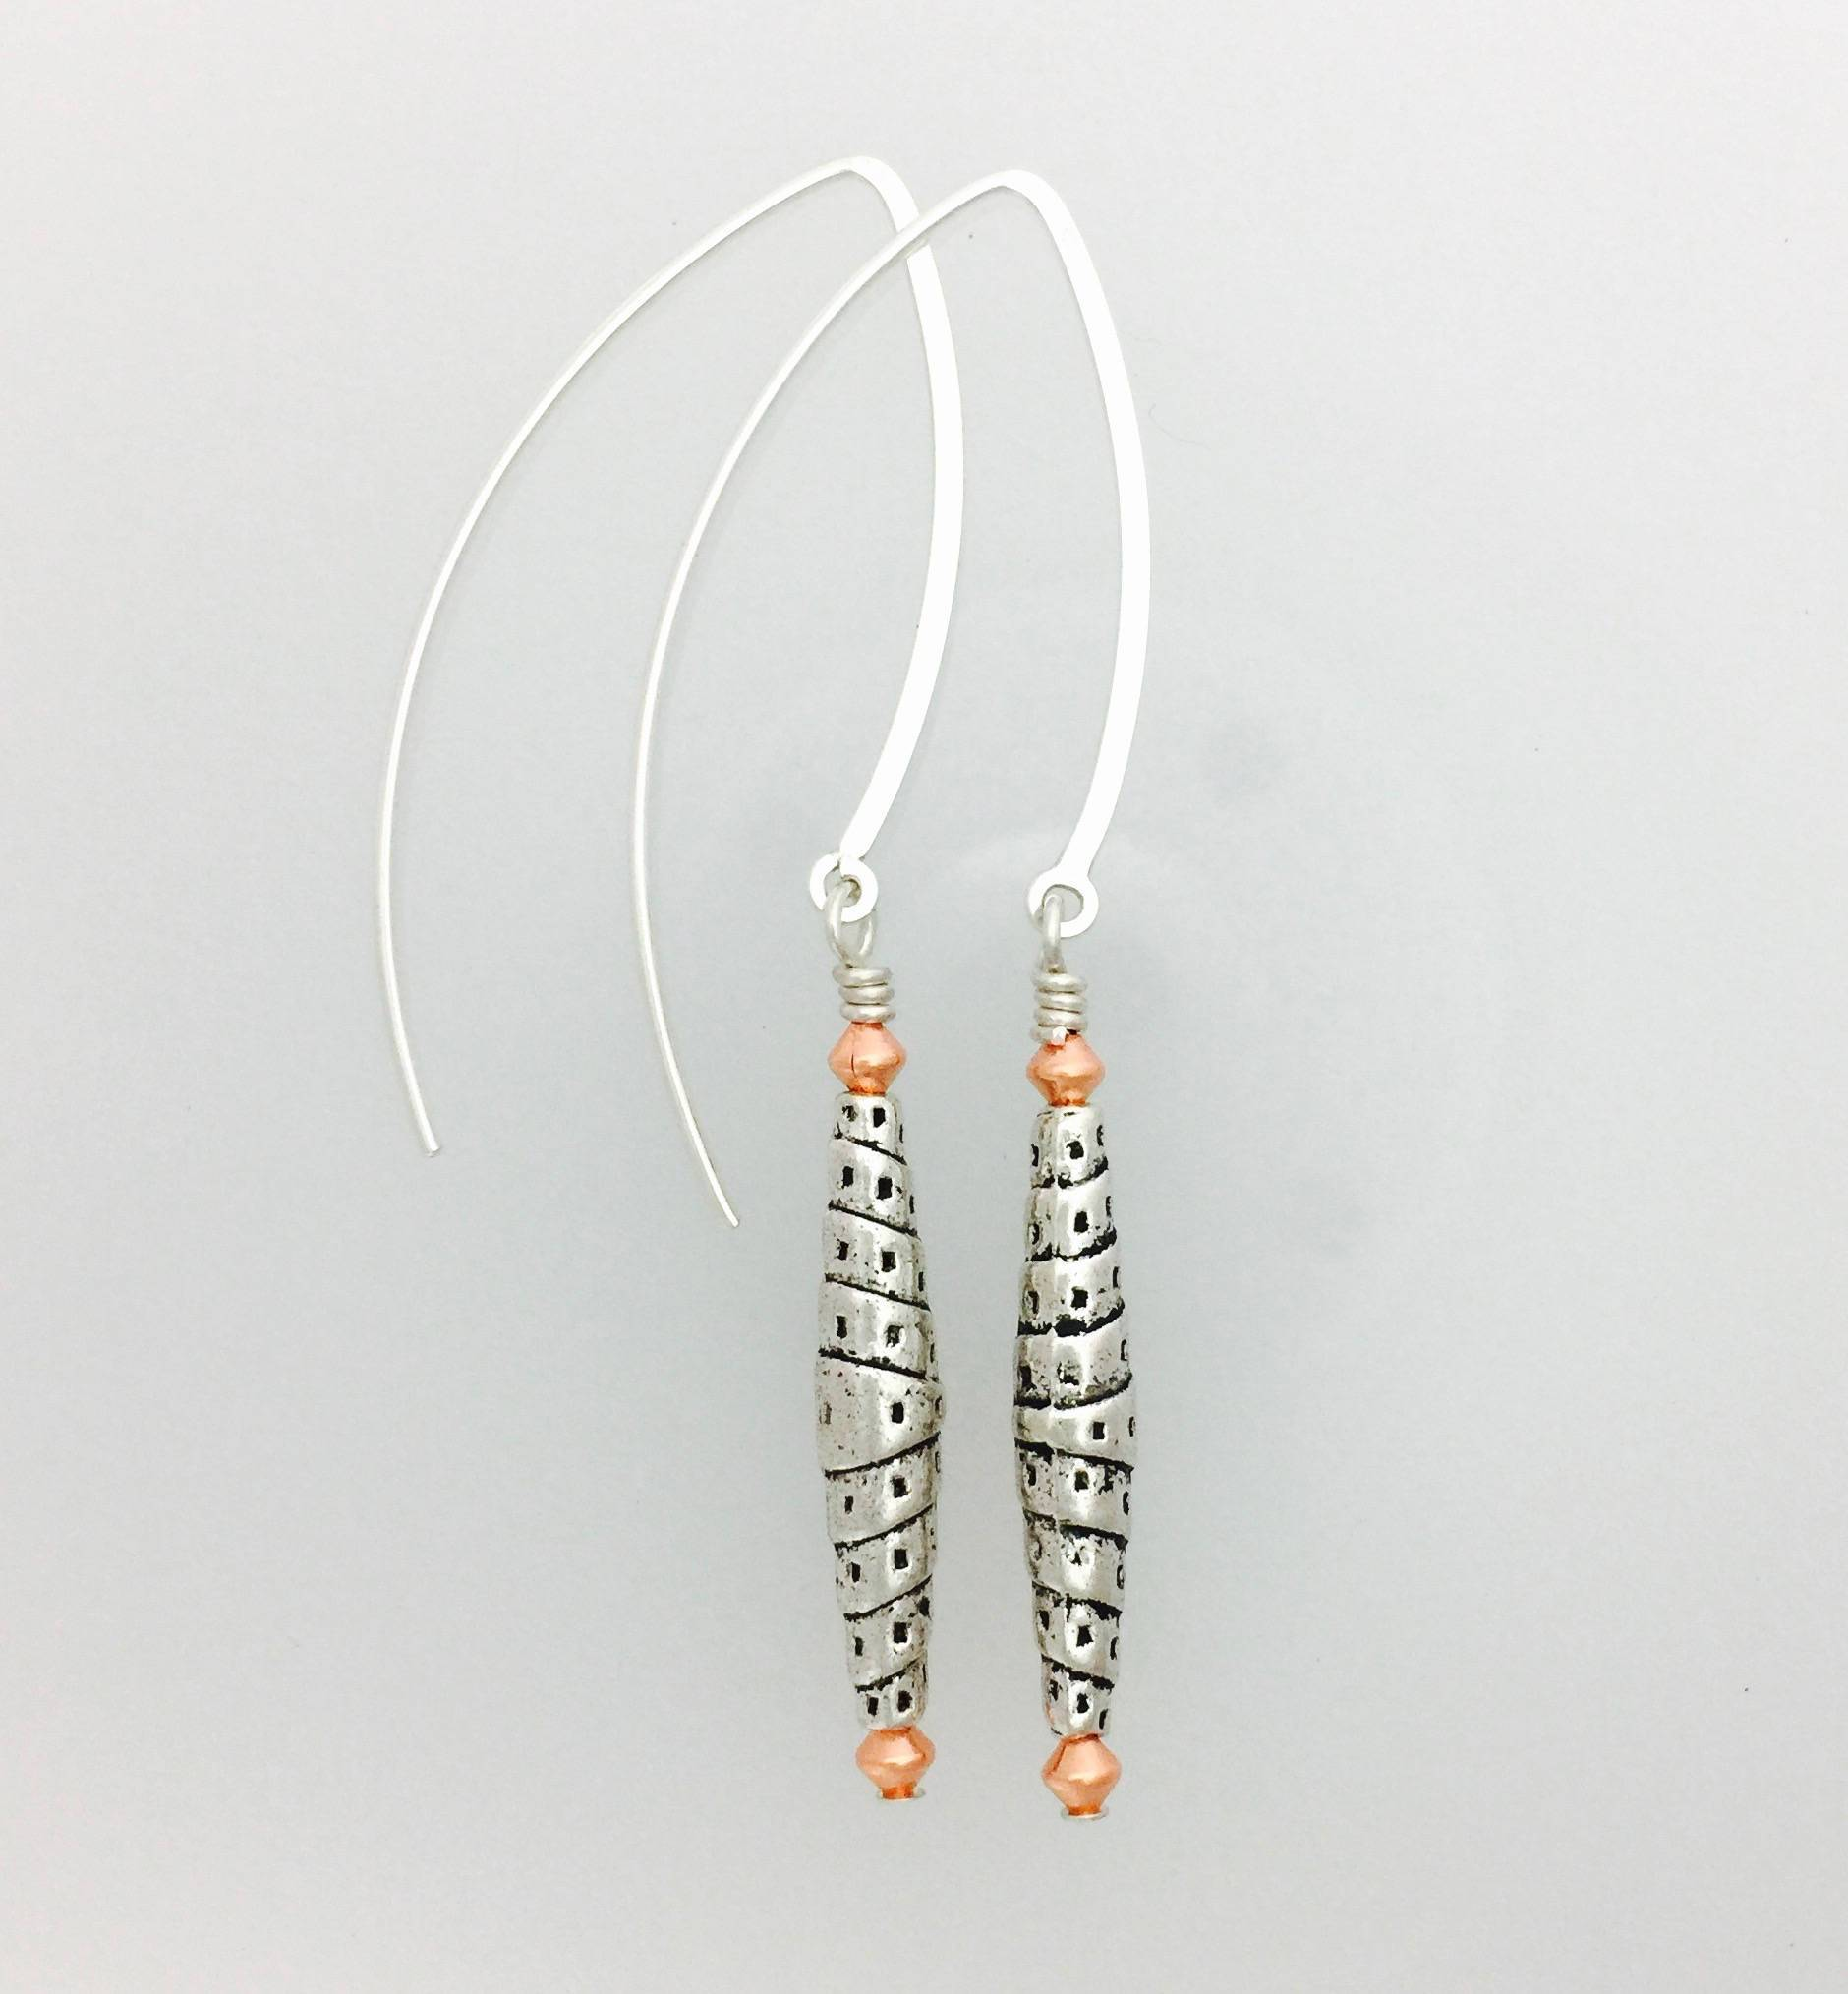 Lead Safe Pewter and Sterling Silver Earrings